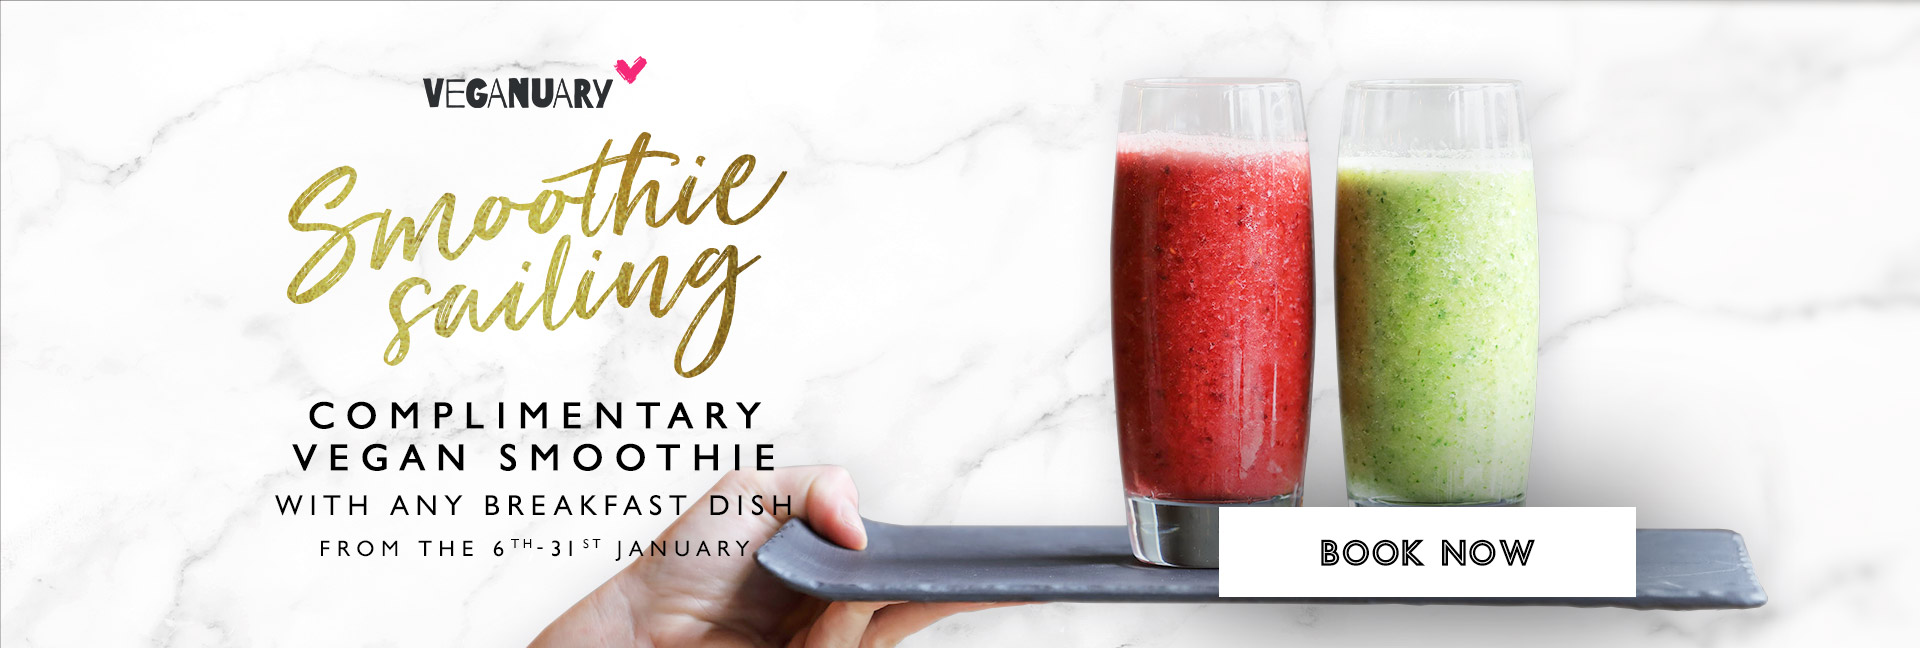 Free Smoothie Offer at All Bar One Picton Place